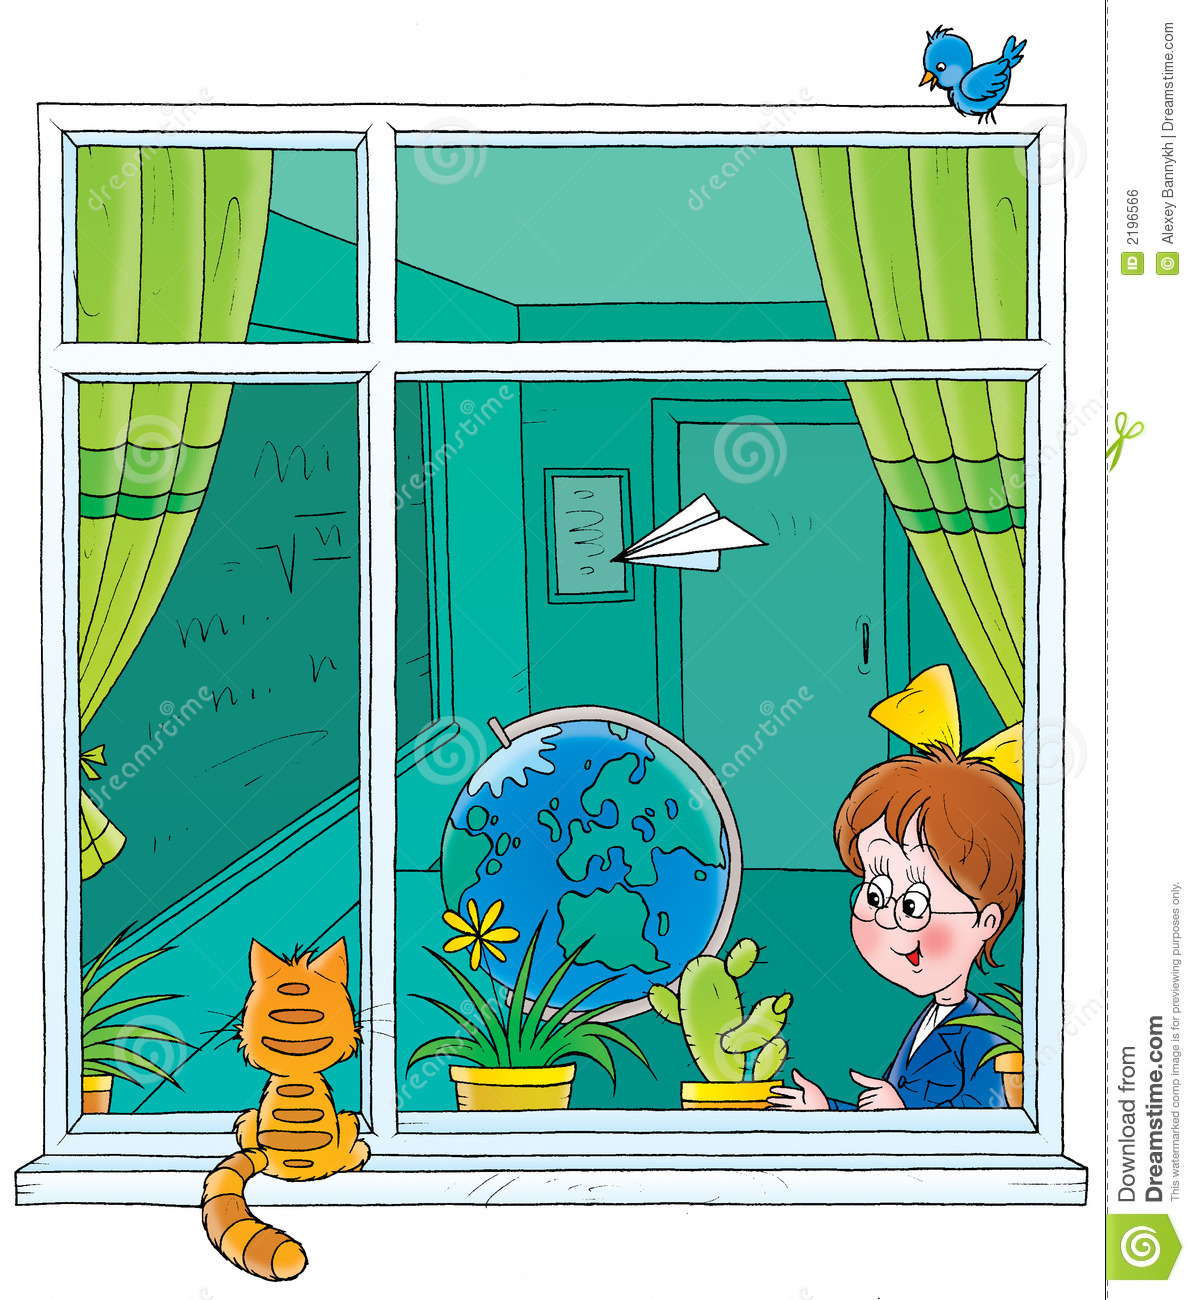 School window stock illustration. Illustration of animated ...